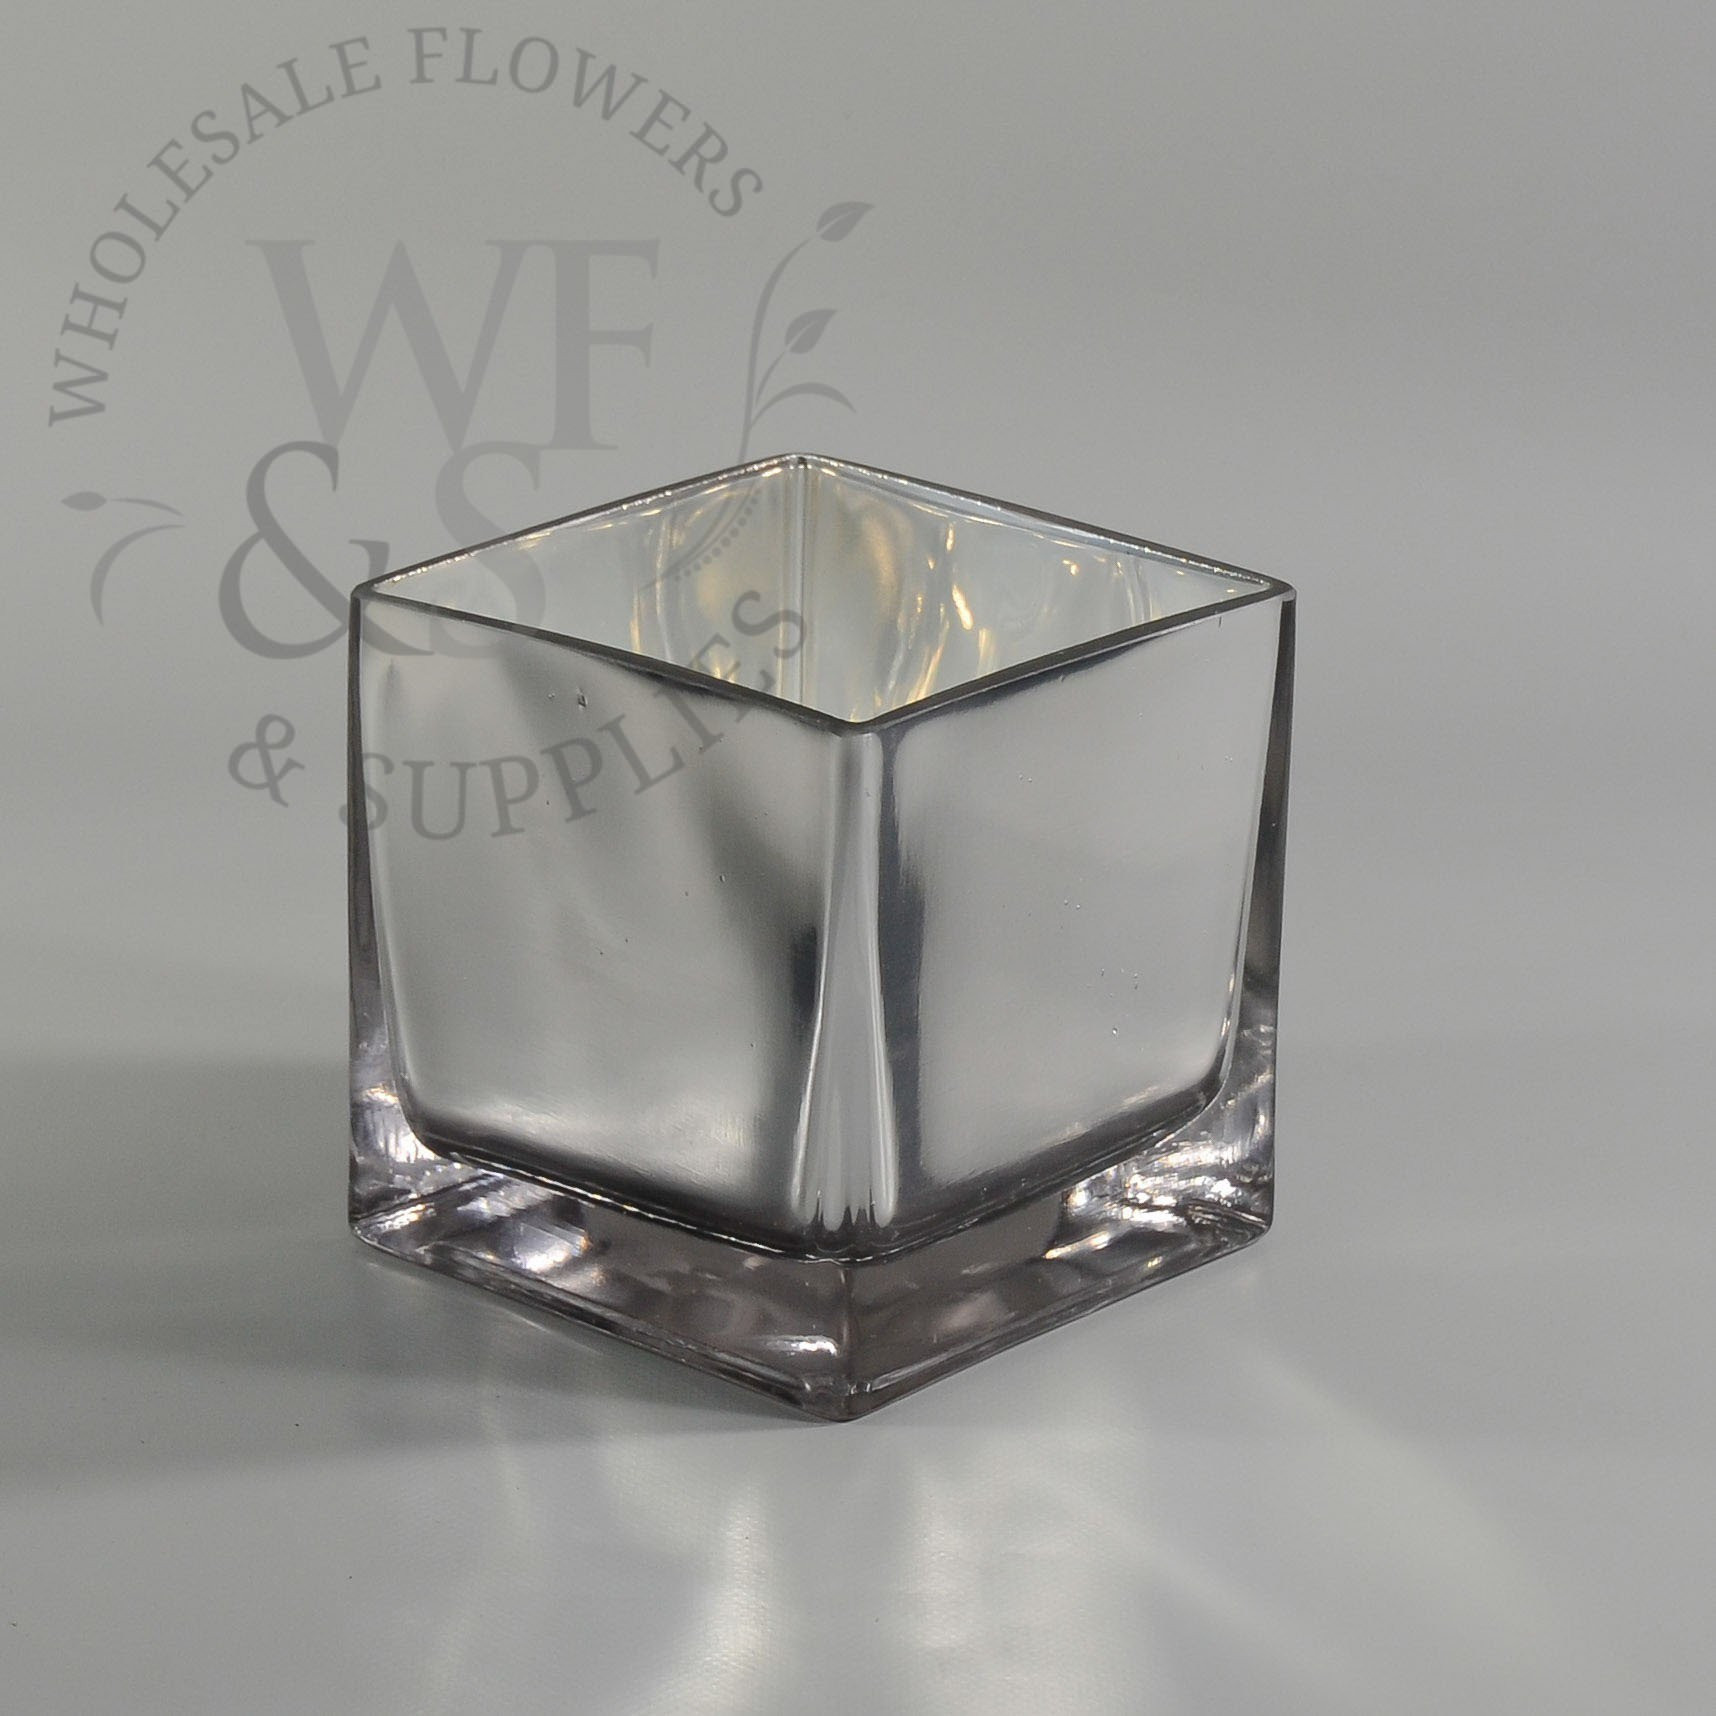 21 Best 8 Cylinder Vase 2021 free download 8 cylinder vase of 13 fresh silver mirror vase bogekompresorturkiye com throughout crystal mirror inspirational mirror vase 8 1h vases mirrored square cube riser inch squarei 0d uk